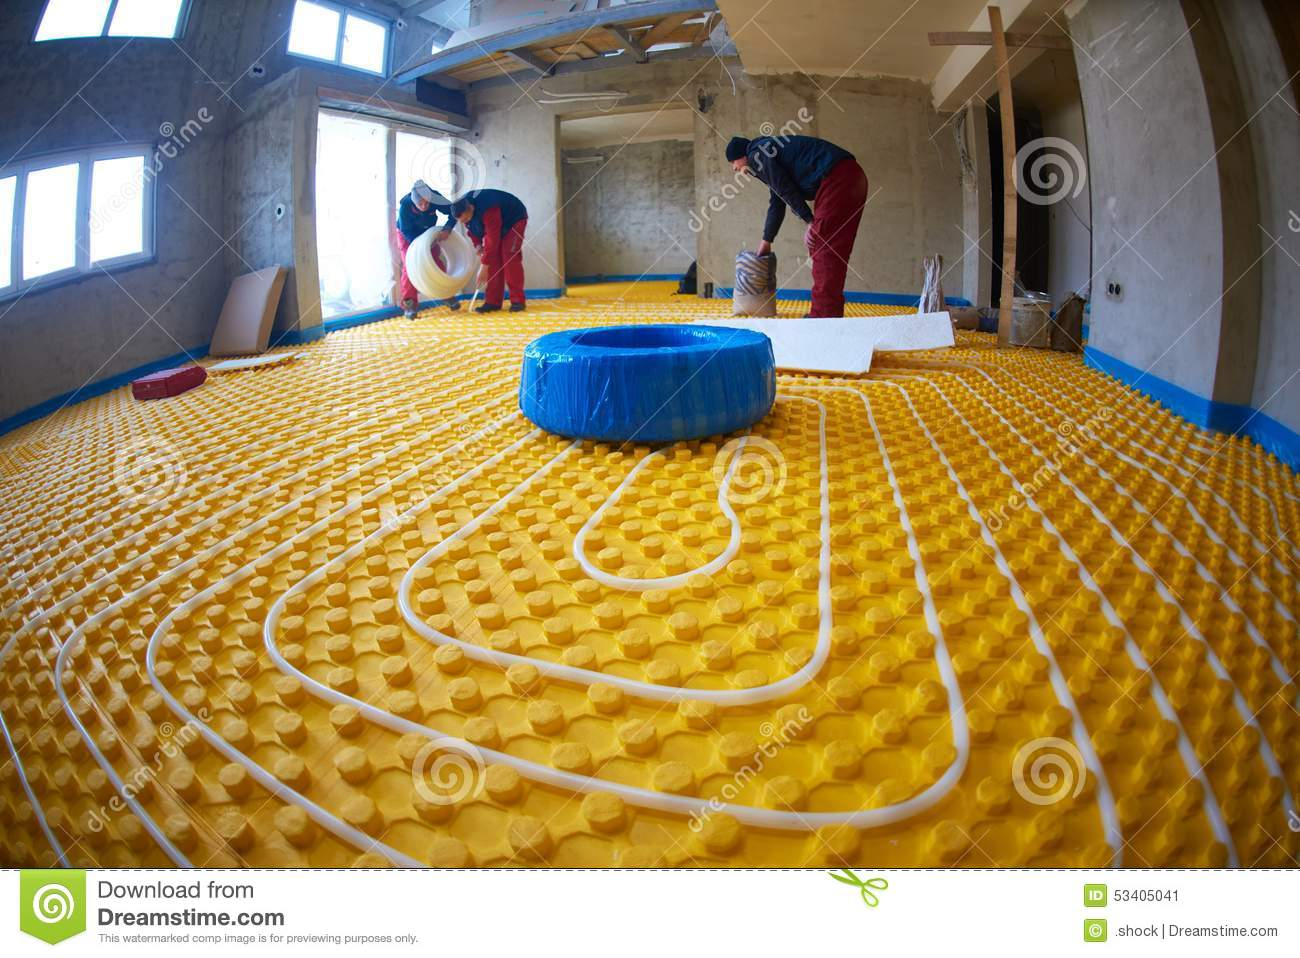 Grouo of workera installing underfloor heating and colling in modern home & Workers Installing Underfloor Heating System Stock Image - Image of ...